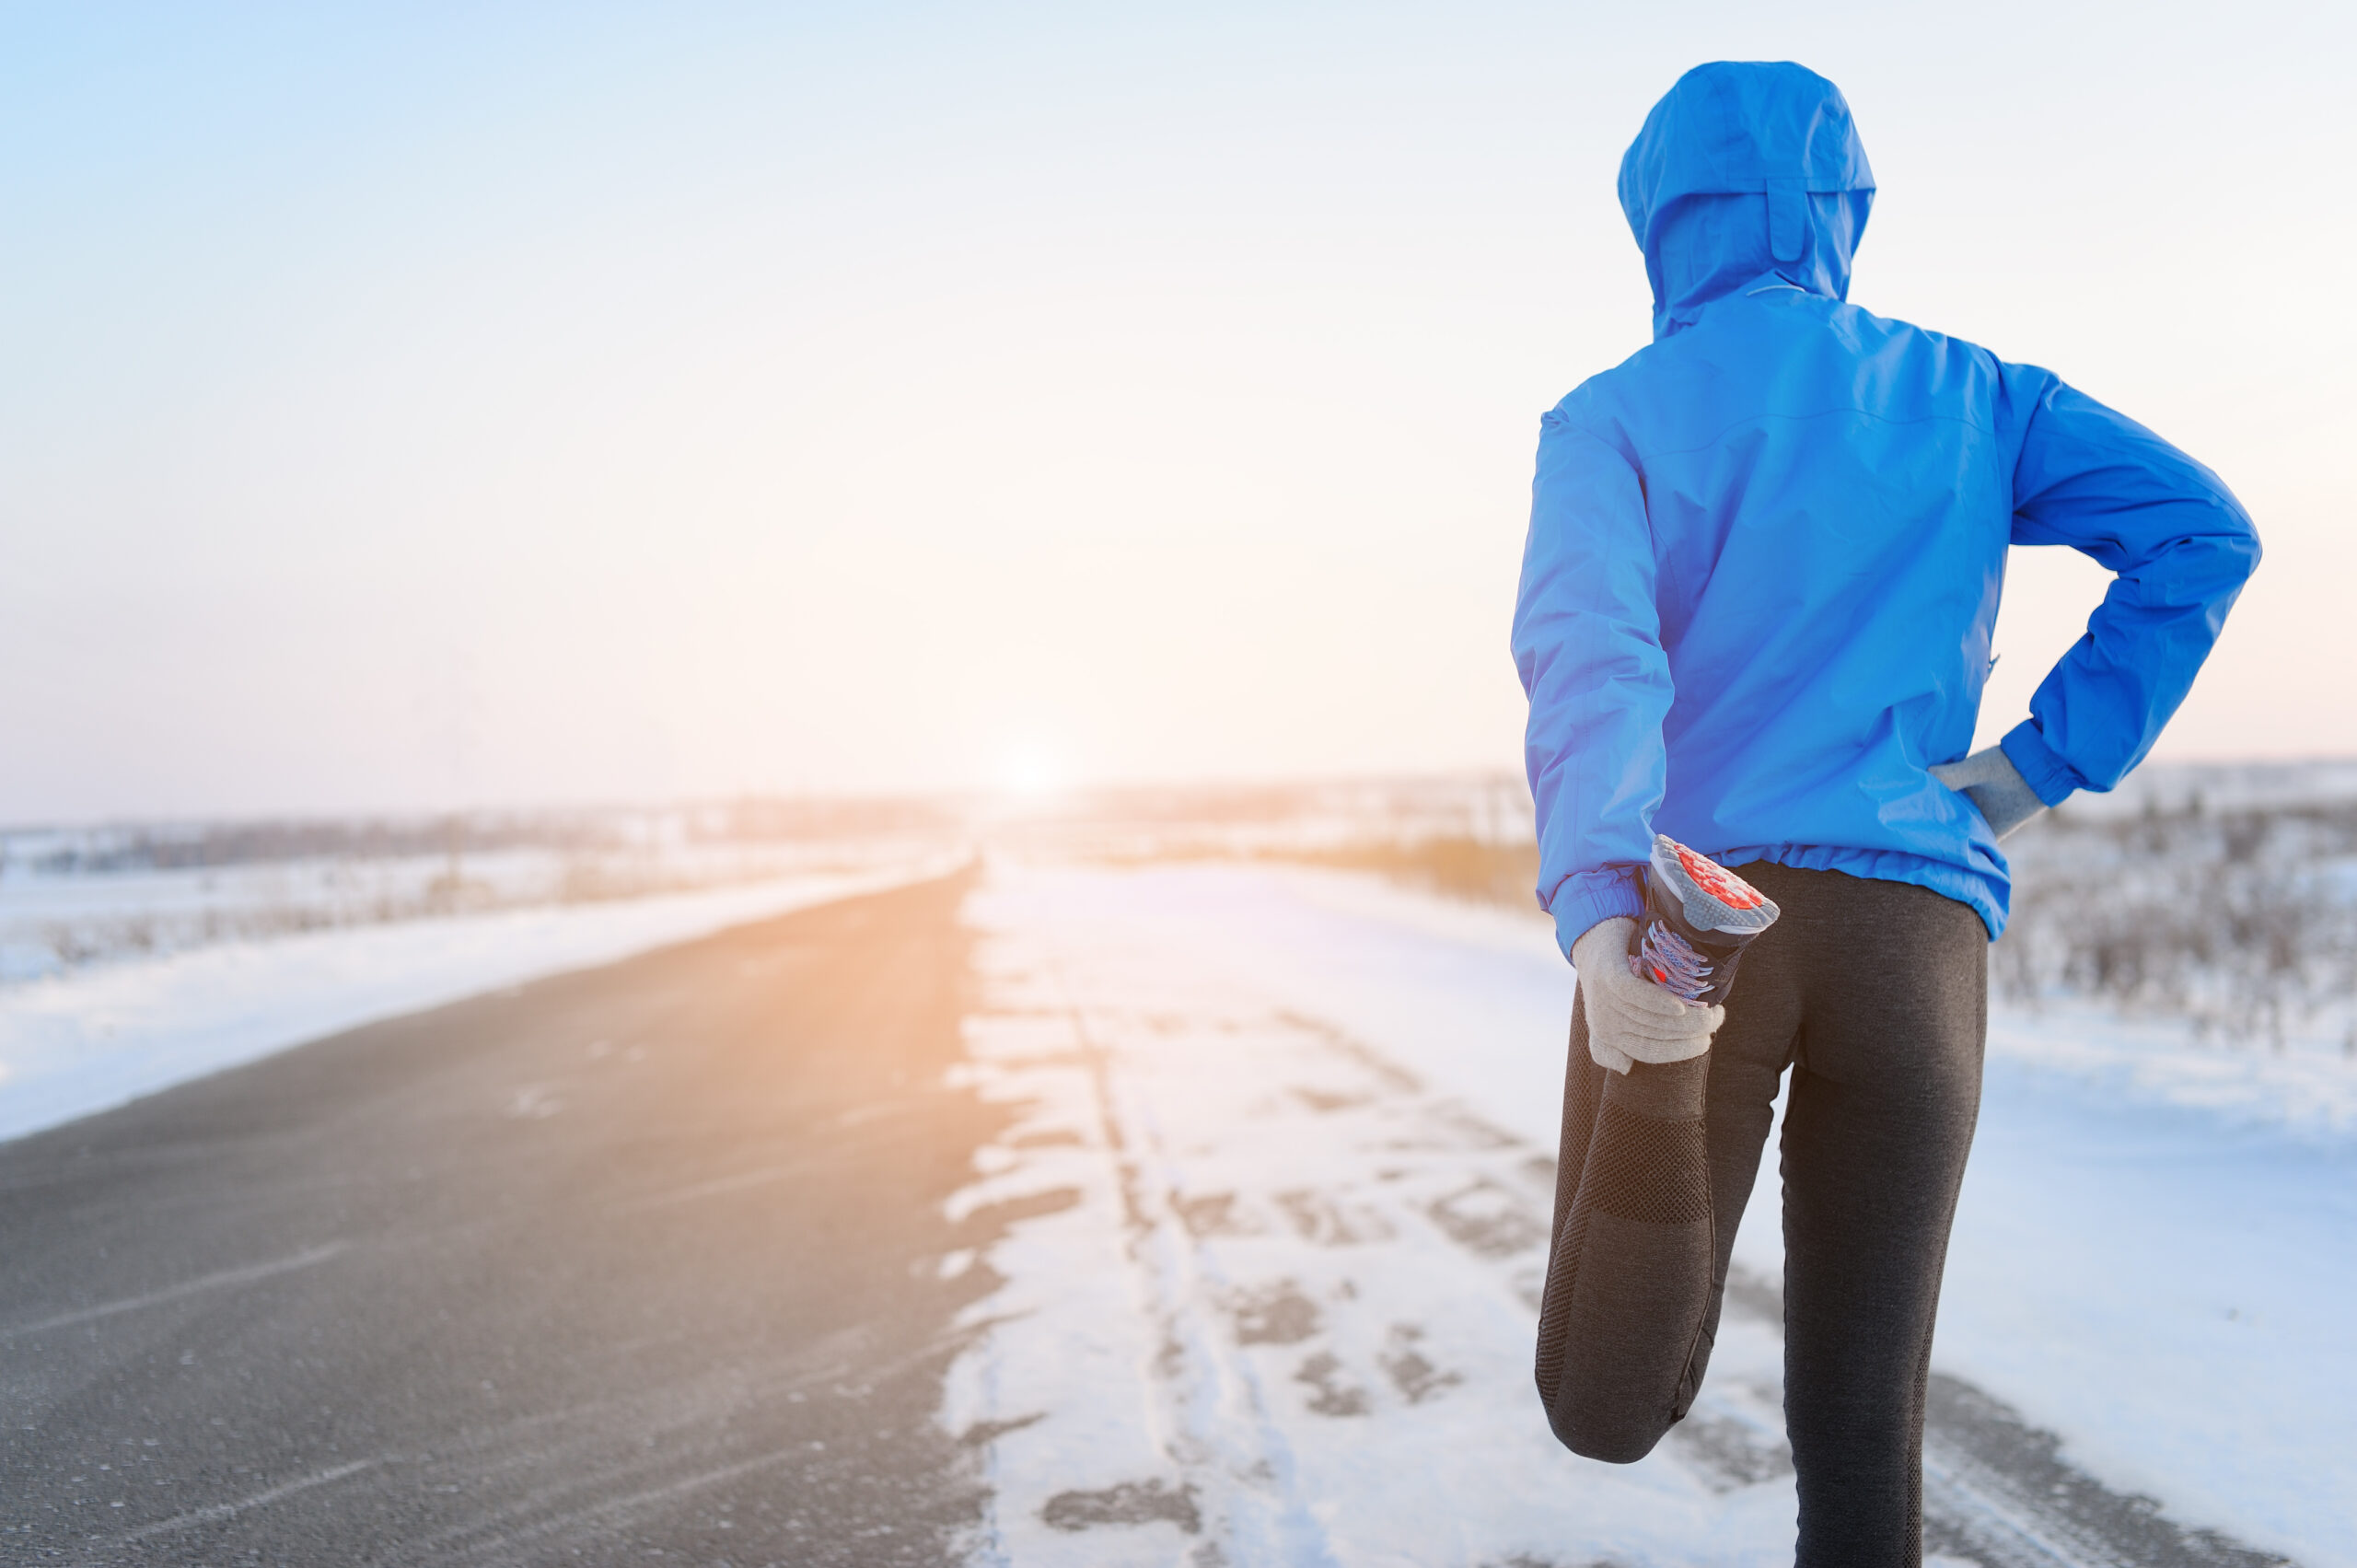 Managing Stress in a Healthy Way During the New Year